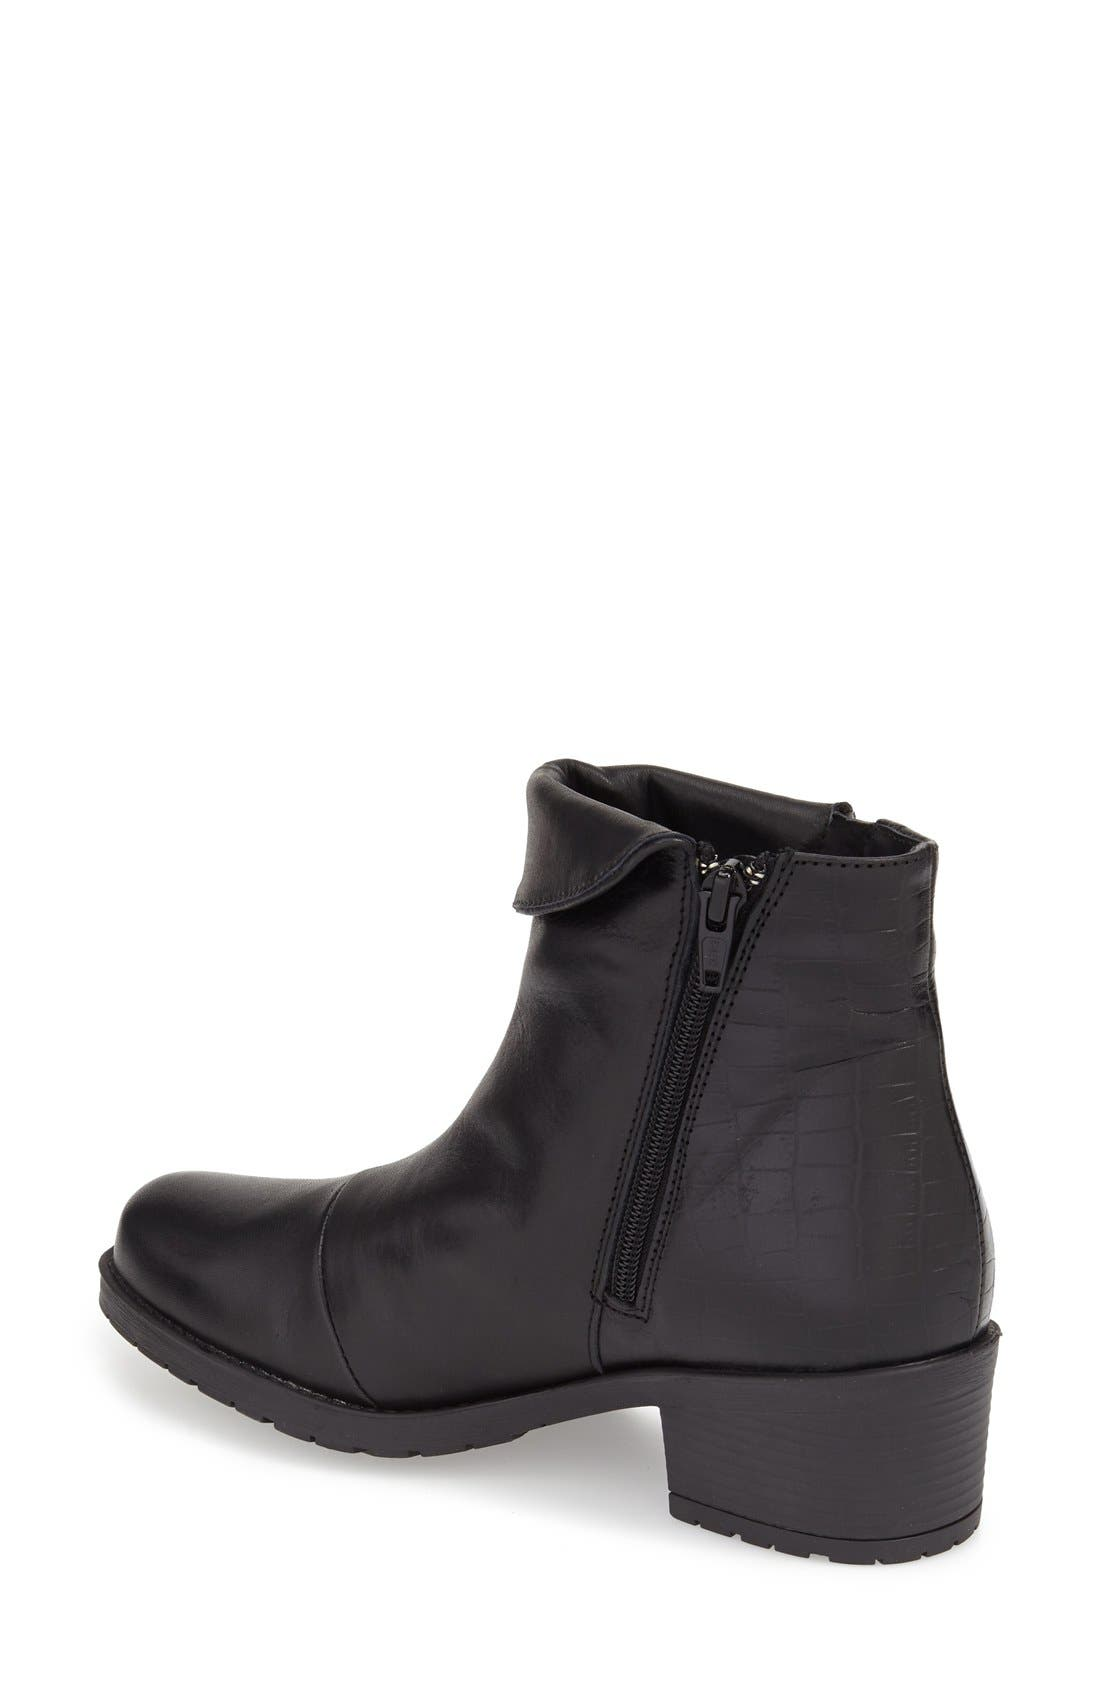 'Borano' Slouchy Waterproof Bootie,                             Alternate thumbnail 2, color,                             BLACK CRINKLE PATENT LEATHER